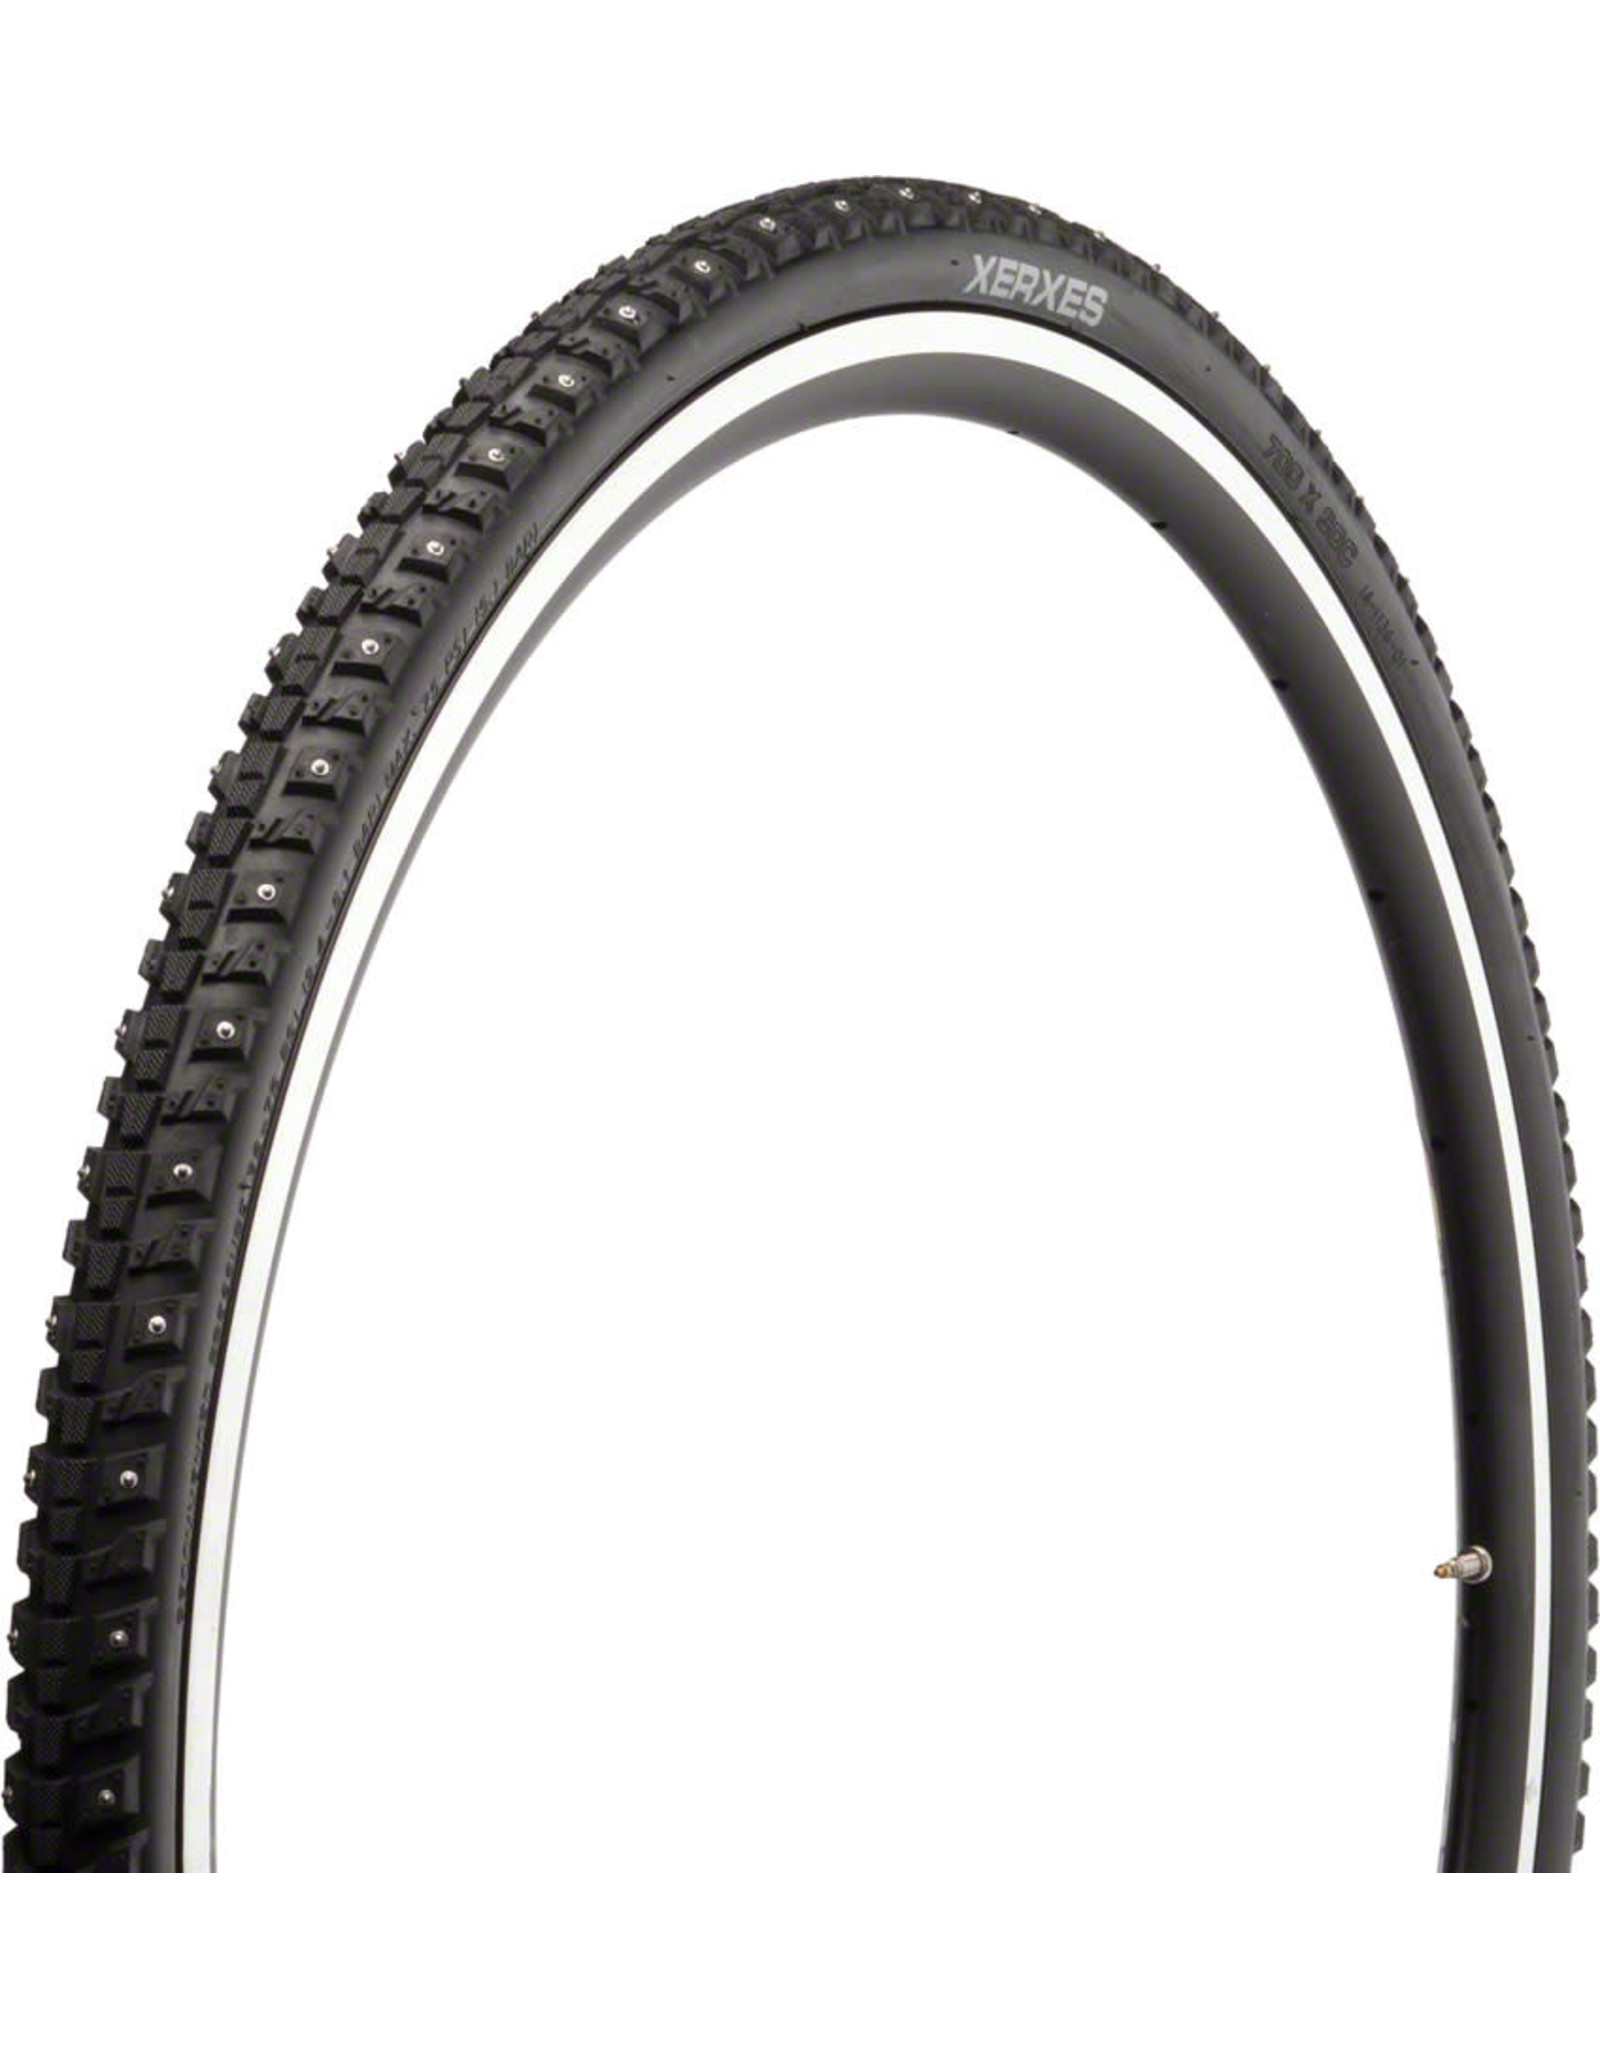 45NRTH 45NRTH Xerxes Tire - 700 x 30, Clincher, Steel, Black, 33tpi, 140 Carbide Steel Studs